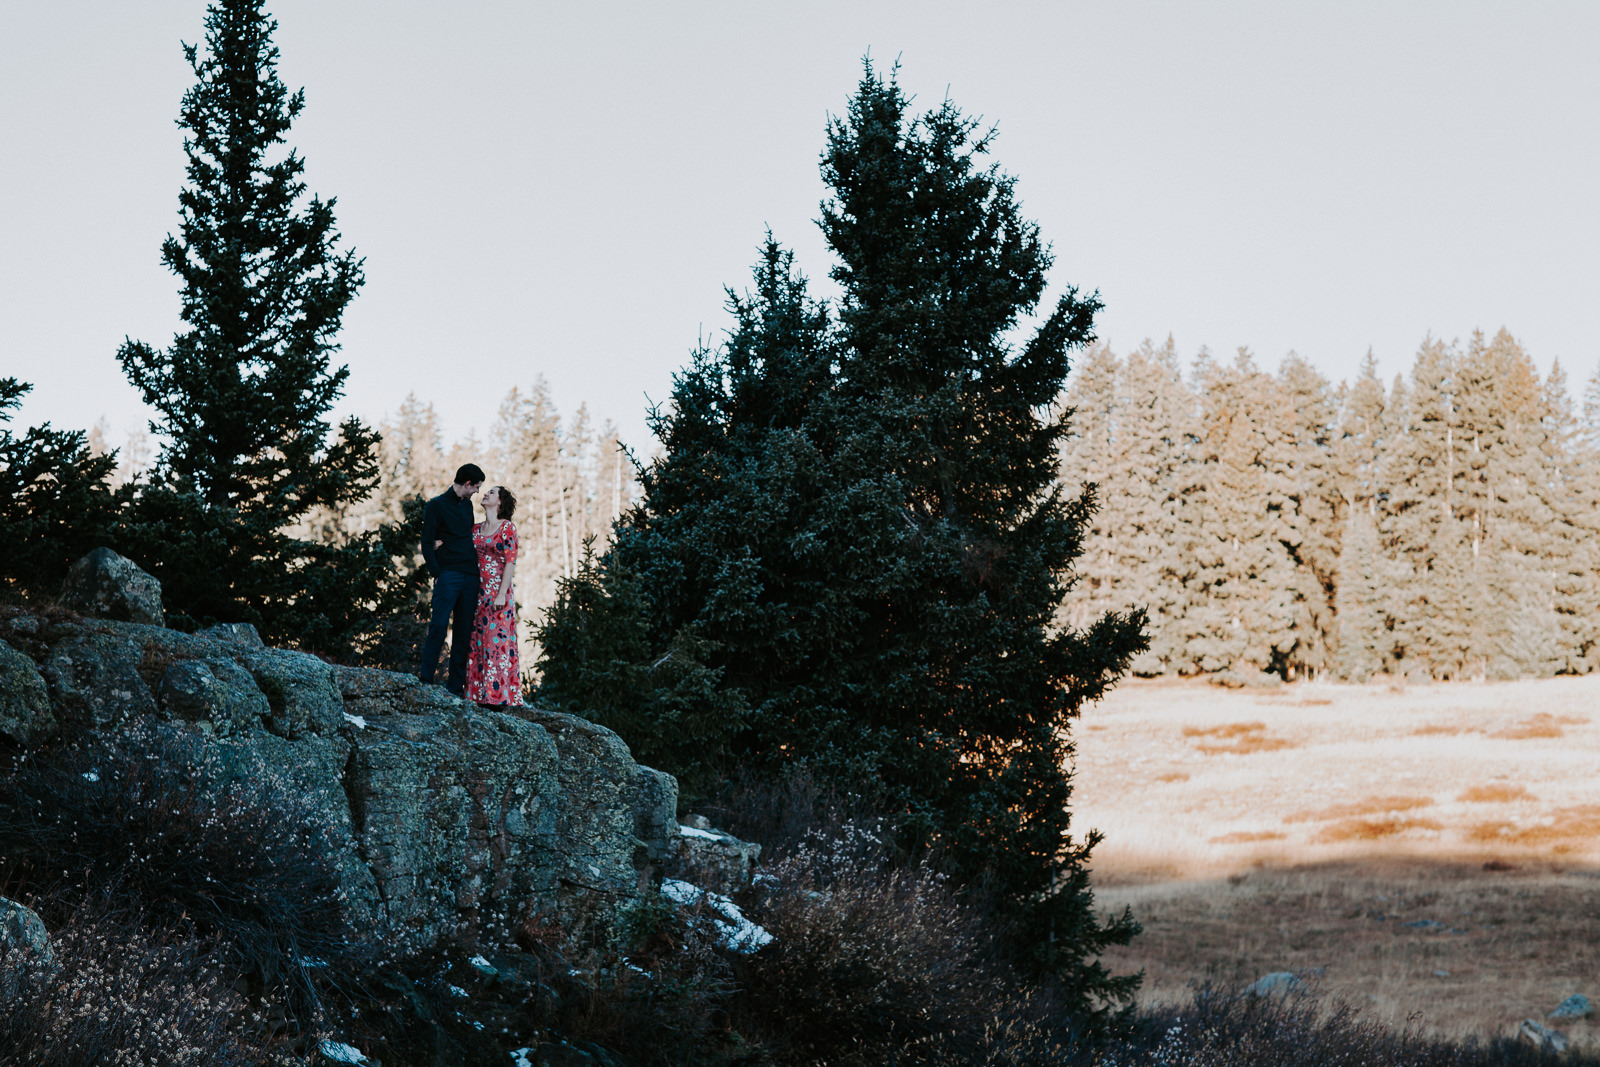 Man in black and woman in pink dress standing on rock in the Grand Mesa National Forest